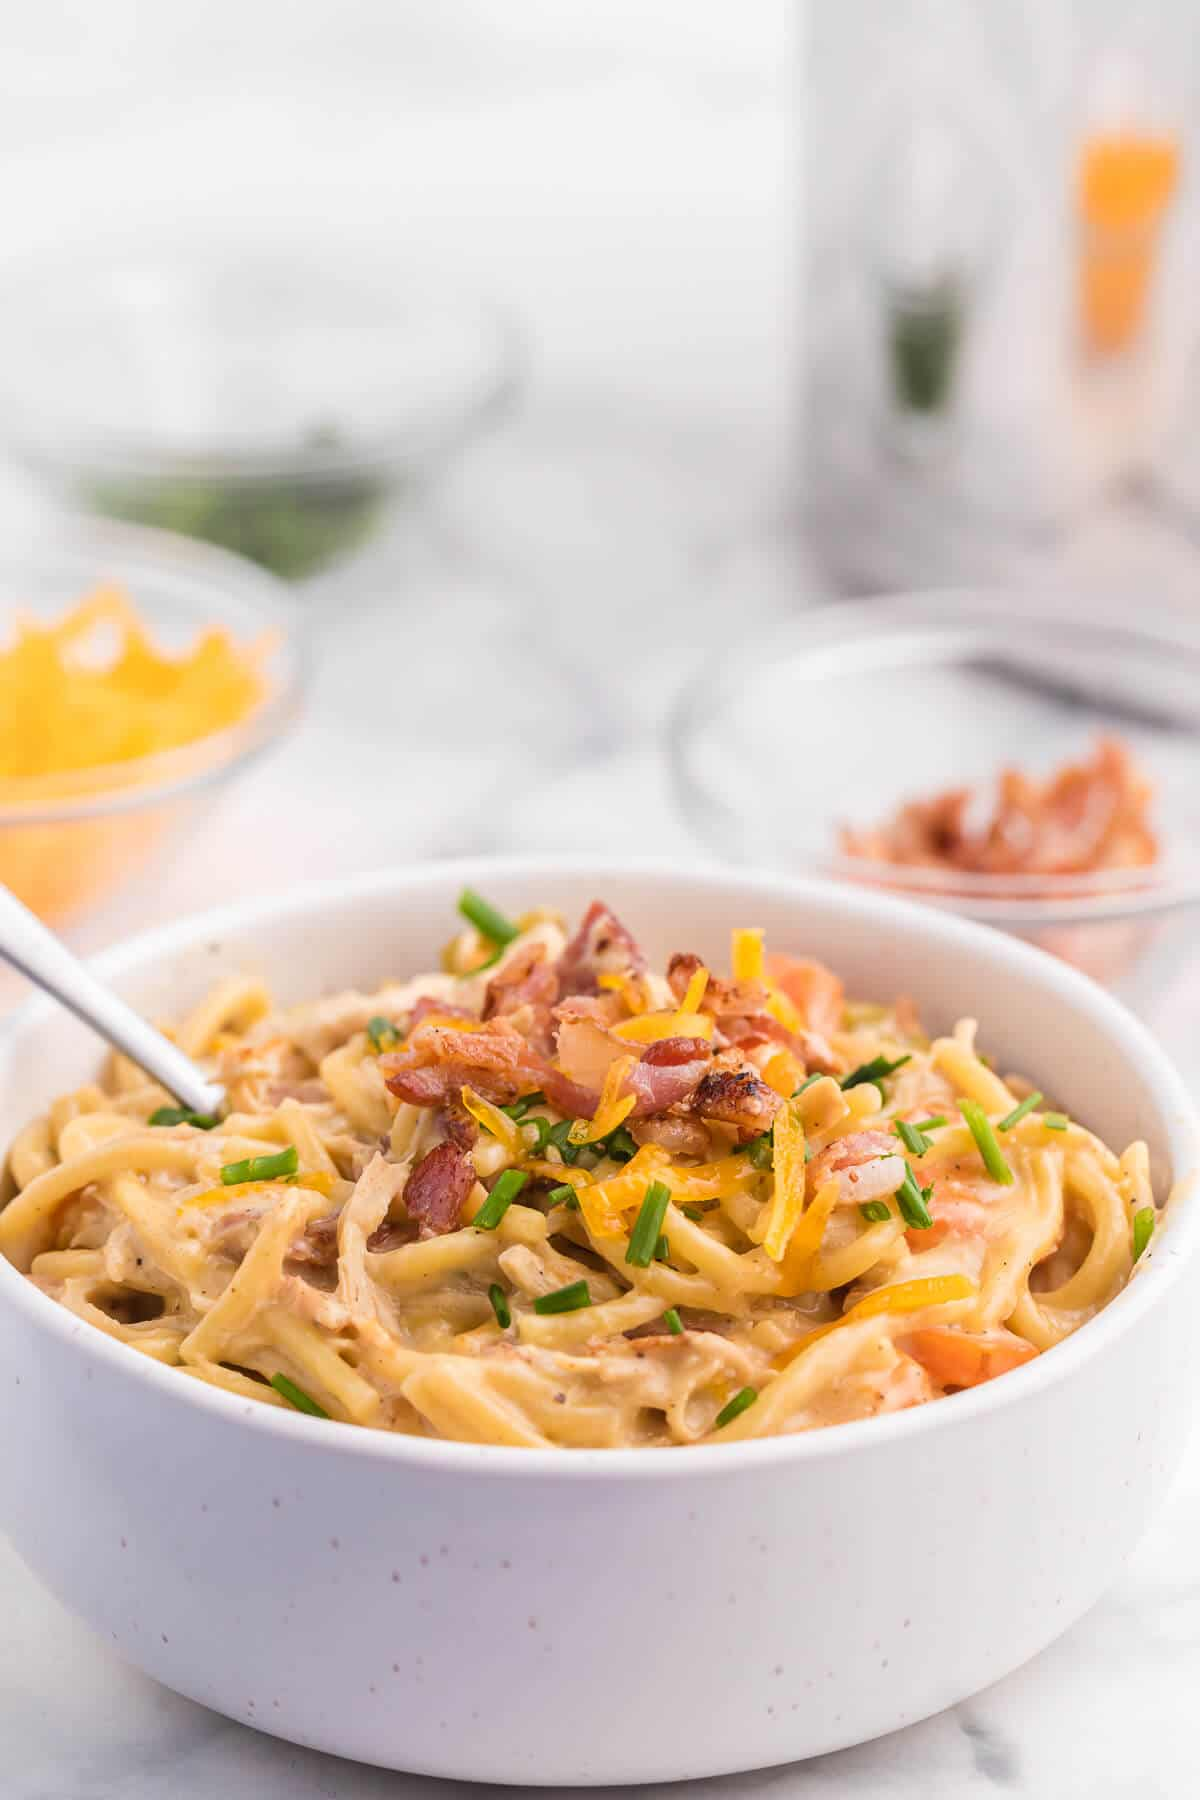 Crack Chicken Spaghetti Recipe - One bite and you'll be hooked! This easy and delicious dinner recipe is creamy, cheesy and addictive. It's loaded with chicken, bacon, veggies and spaghetti noodles in a flavorful cream cheese based sauce.